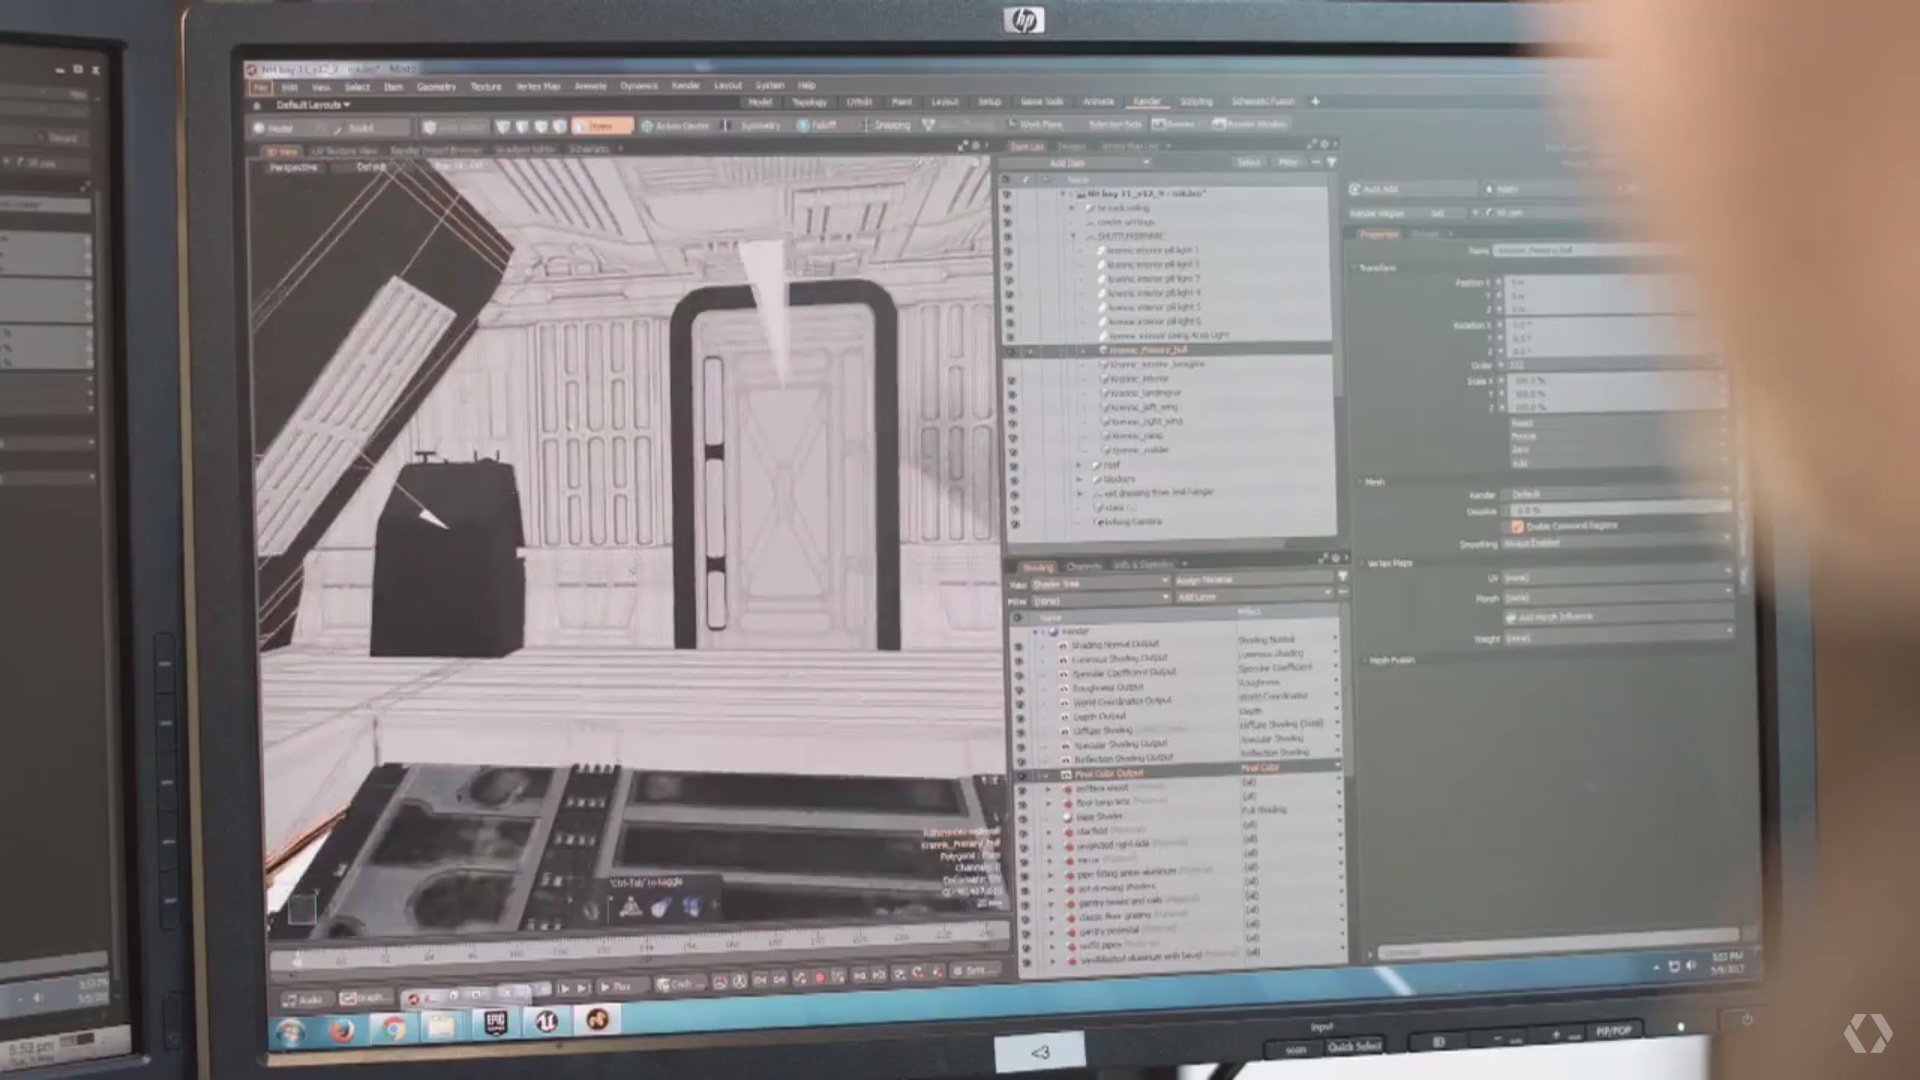 Google's new render tool brings 'Star Wars' to life in gorgeous detail